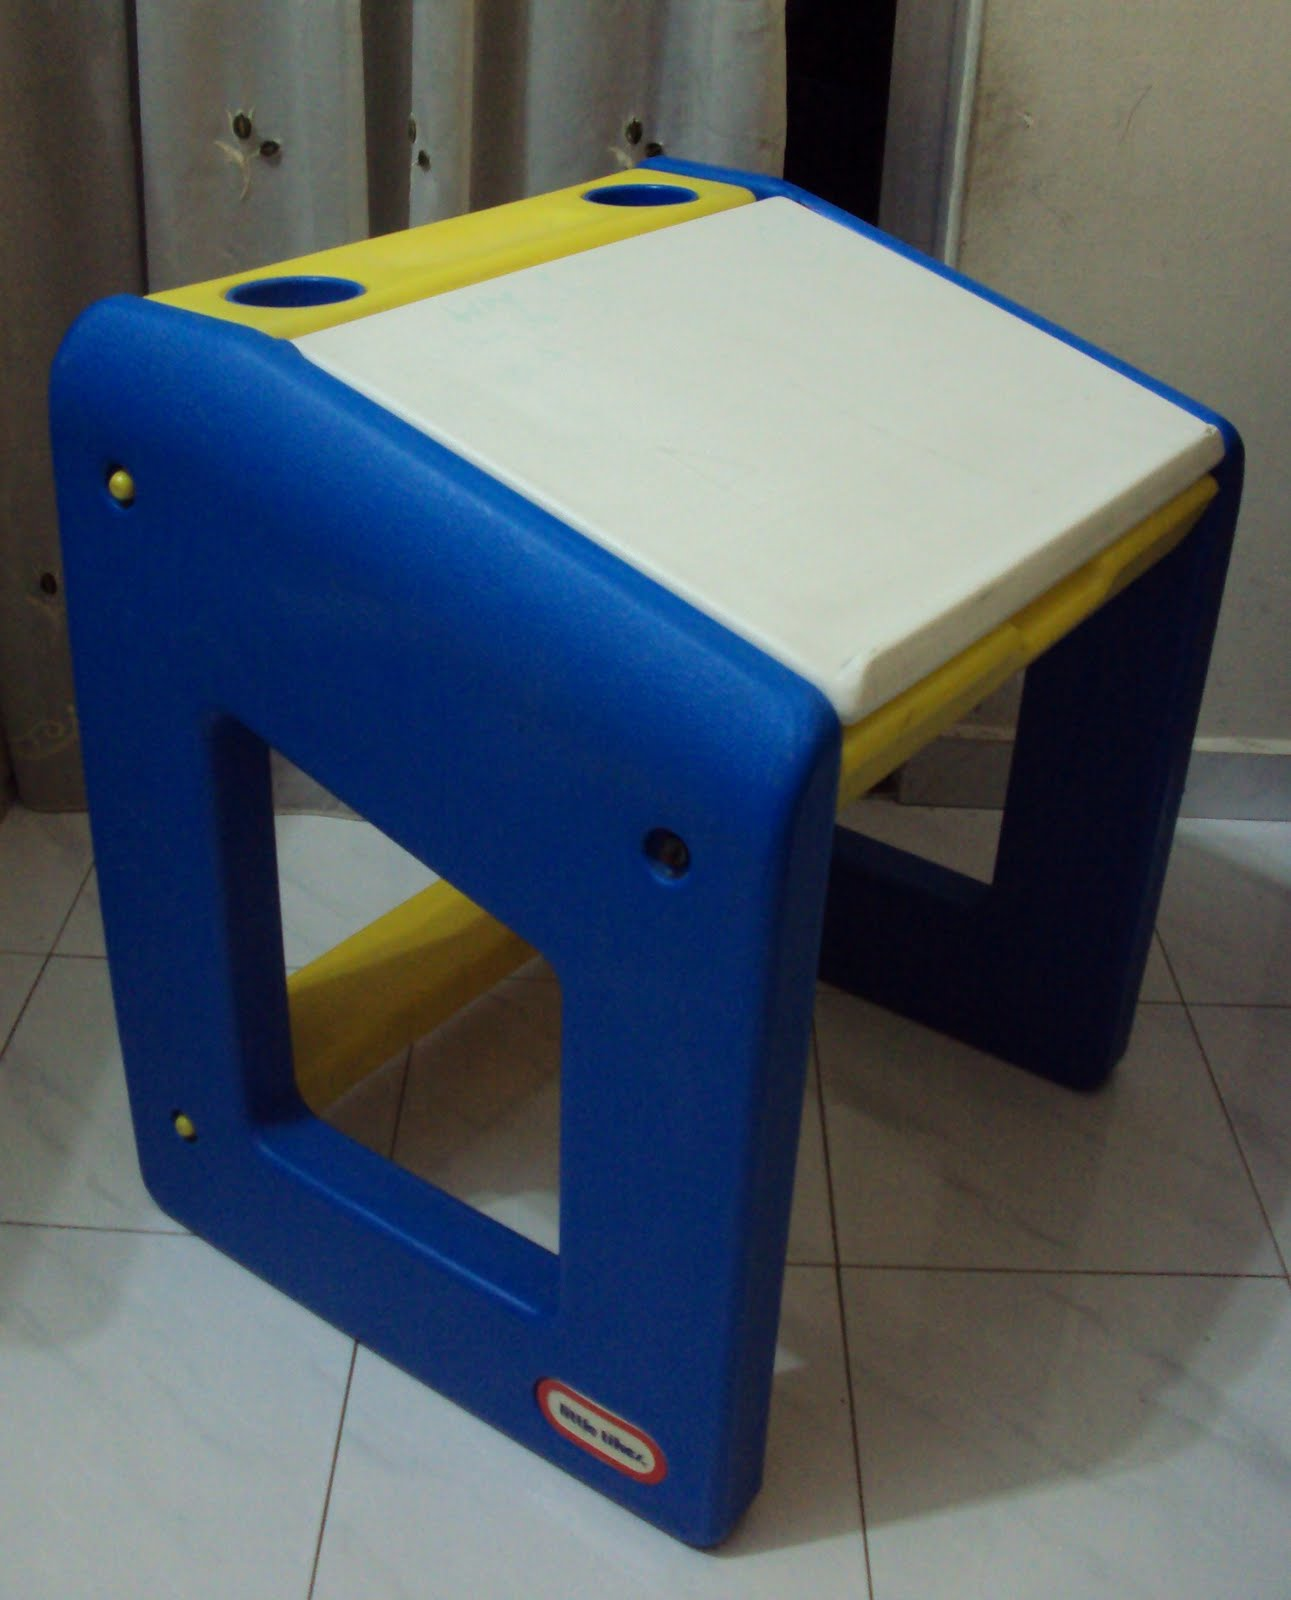 Toys4toddlers Little Tikes study table